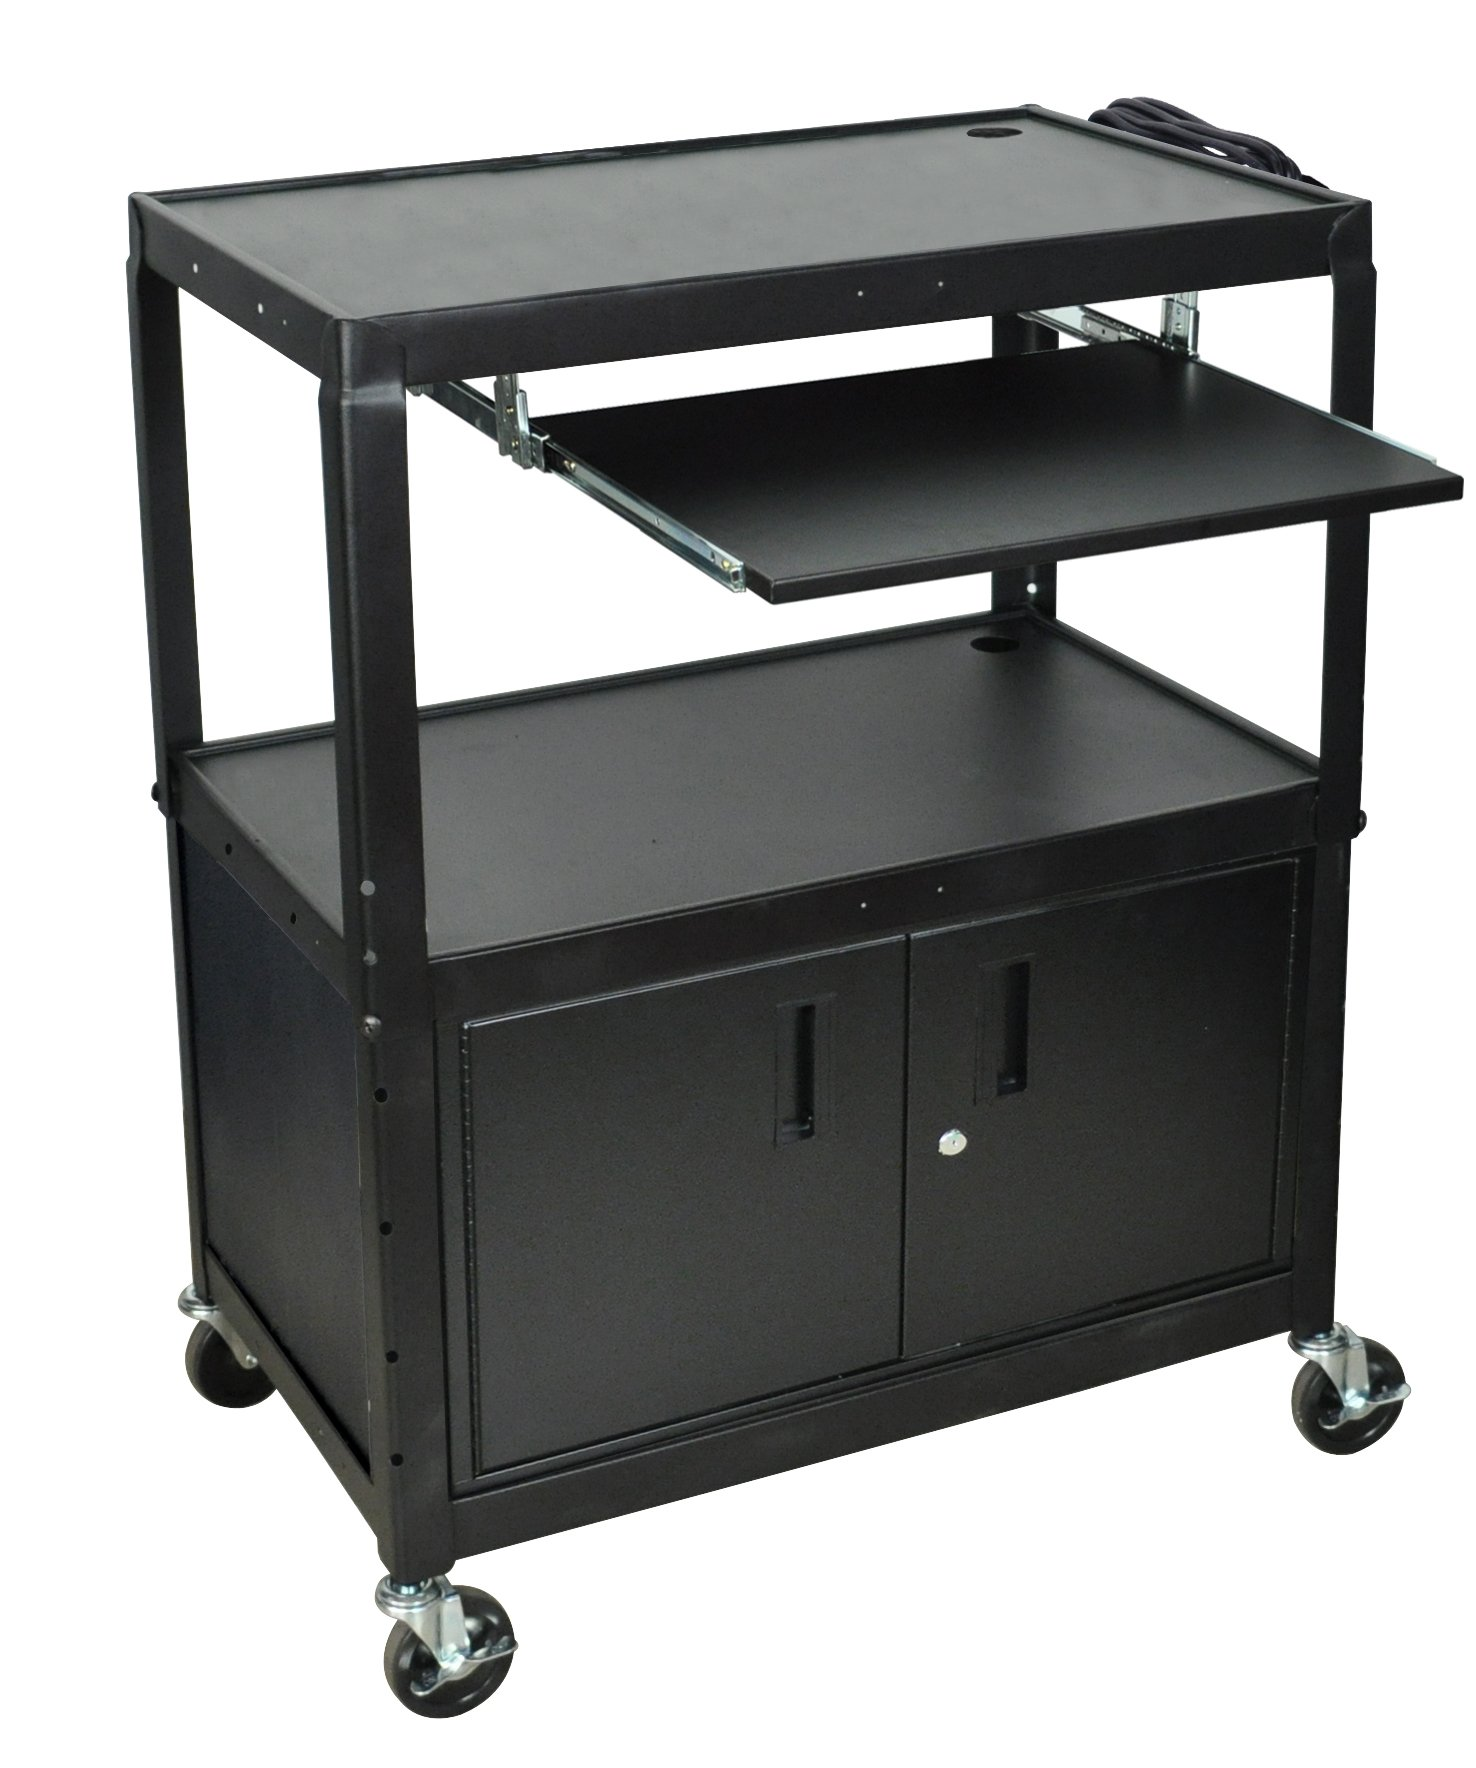 LUXOR AVJ42XLKBC A/V Cart with Keyboard Shelf and Cabinet, Extra Wide, Adjustable Height by Luxor